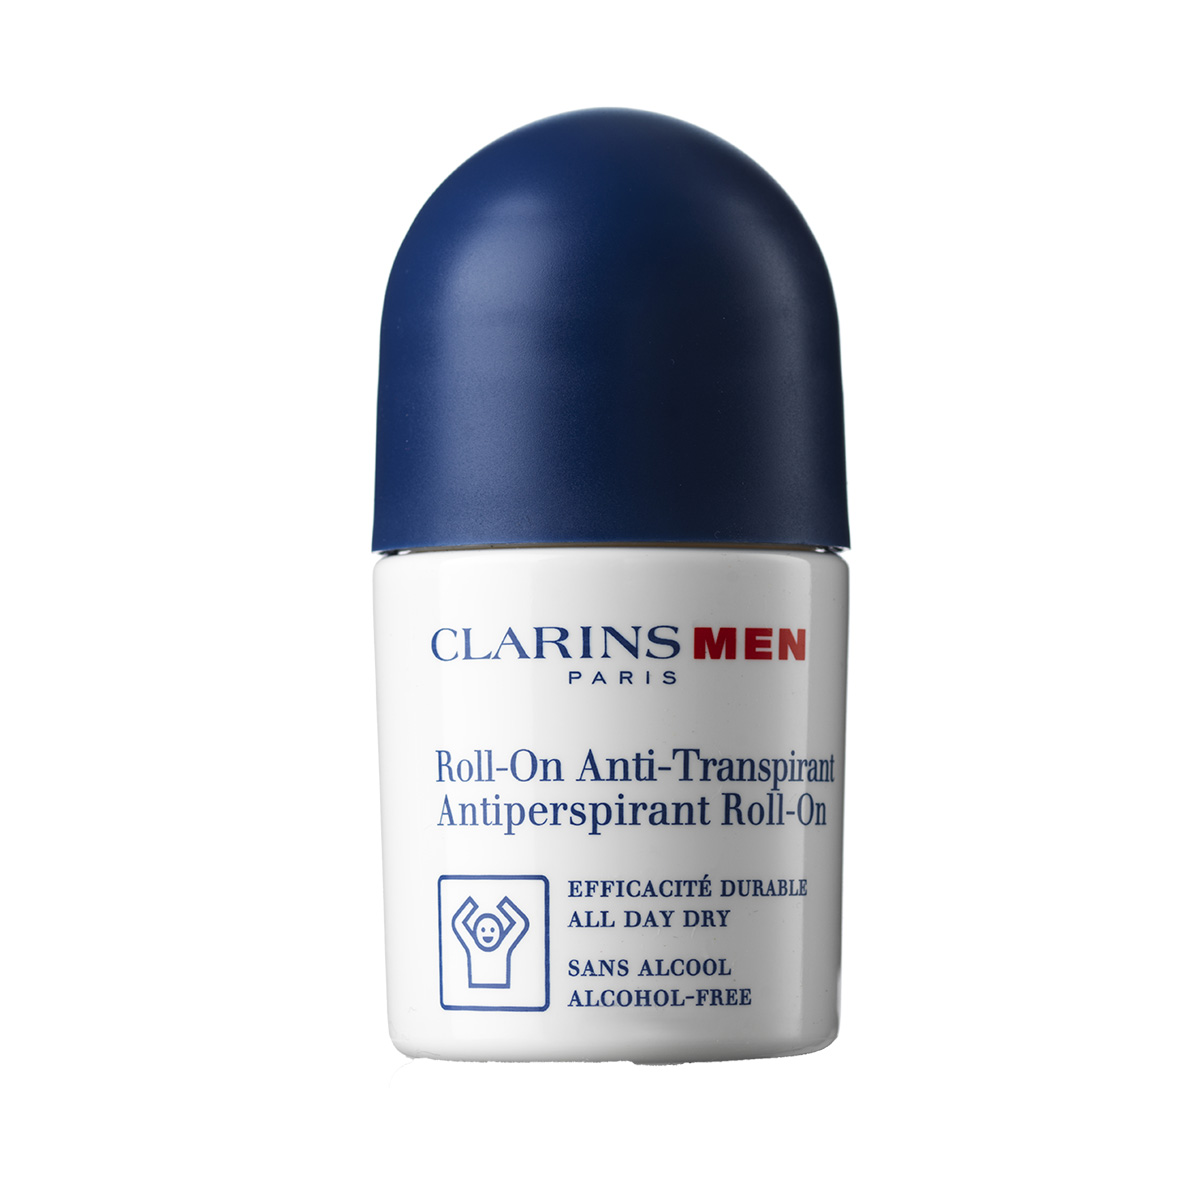 Clarins Men Antiperspirant Roll-On - 50 ml